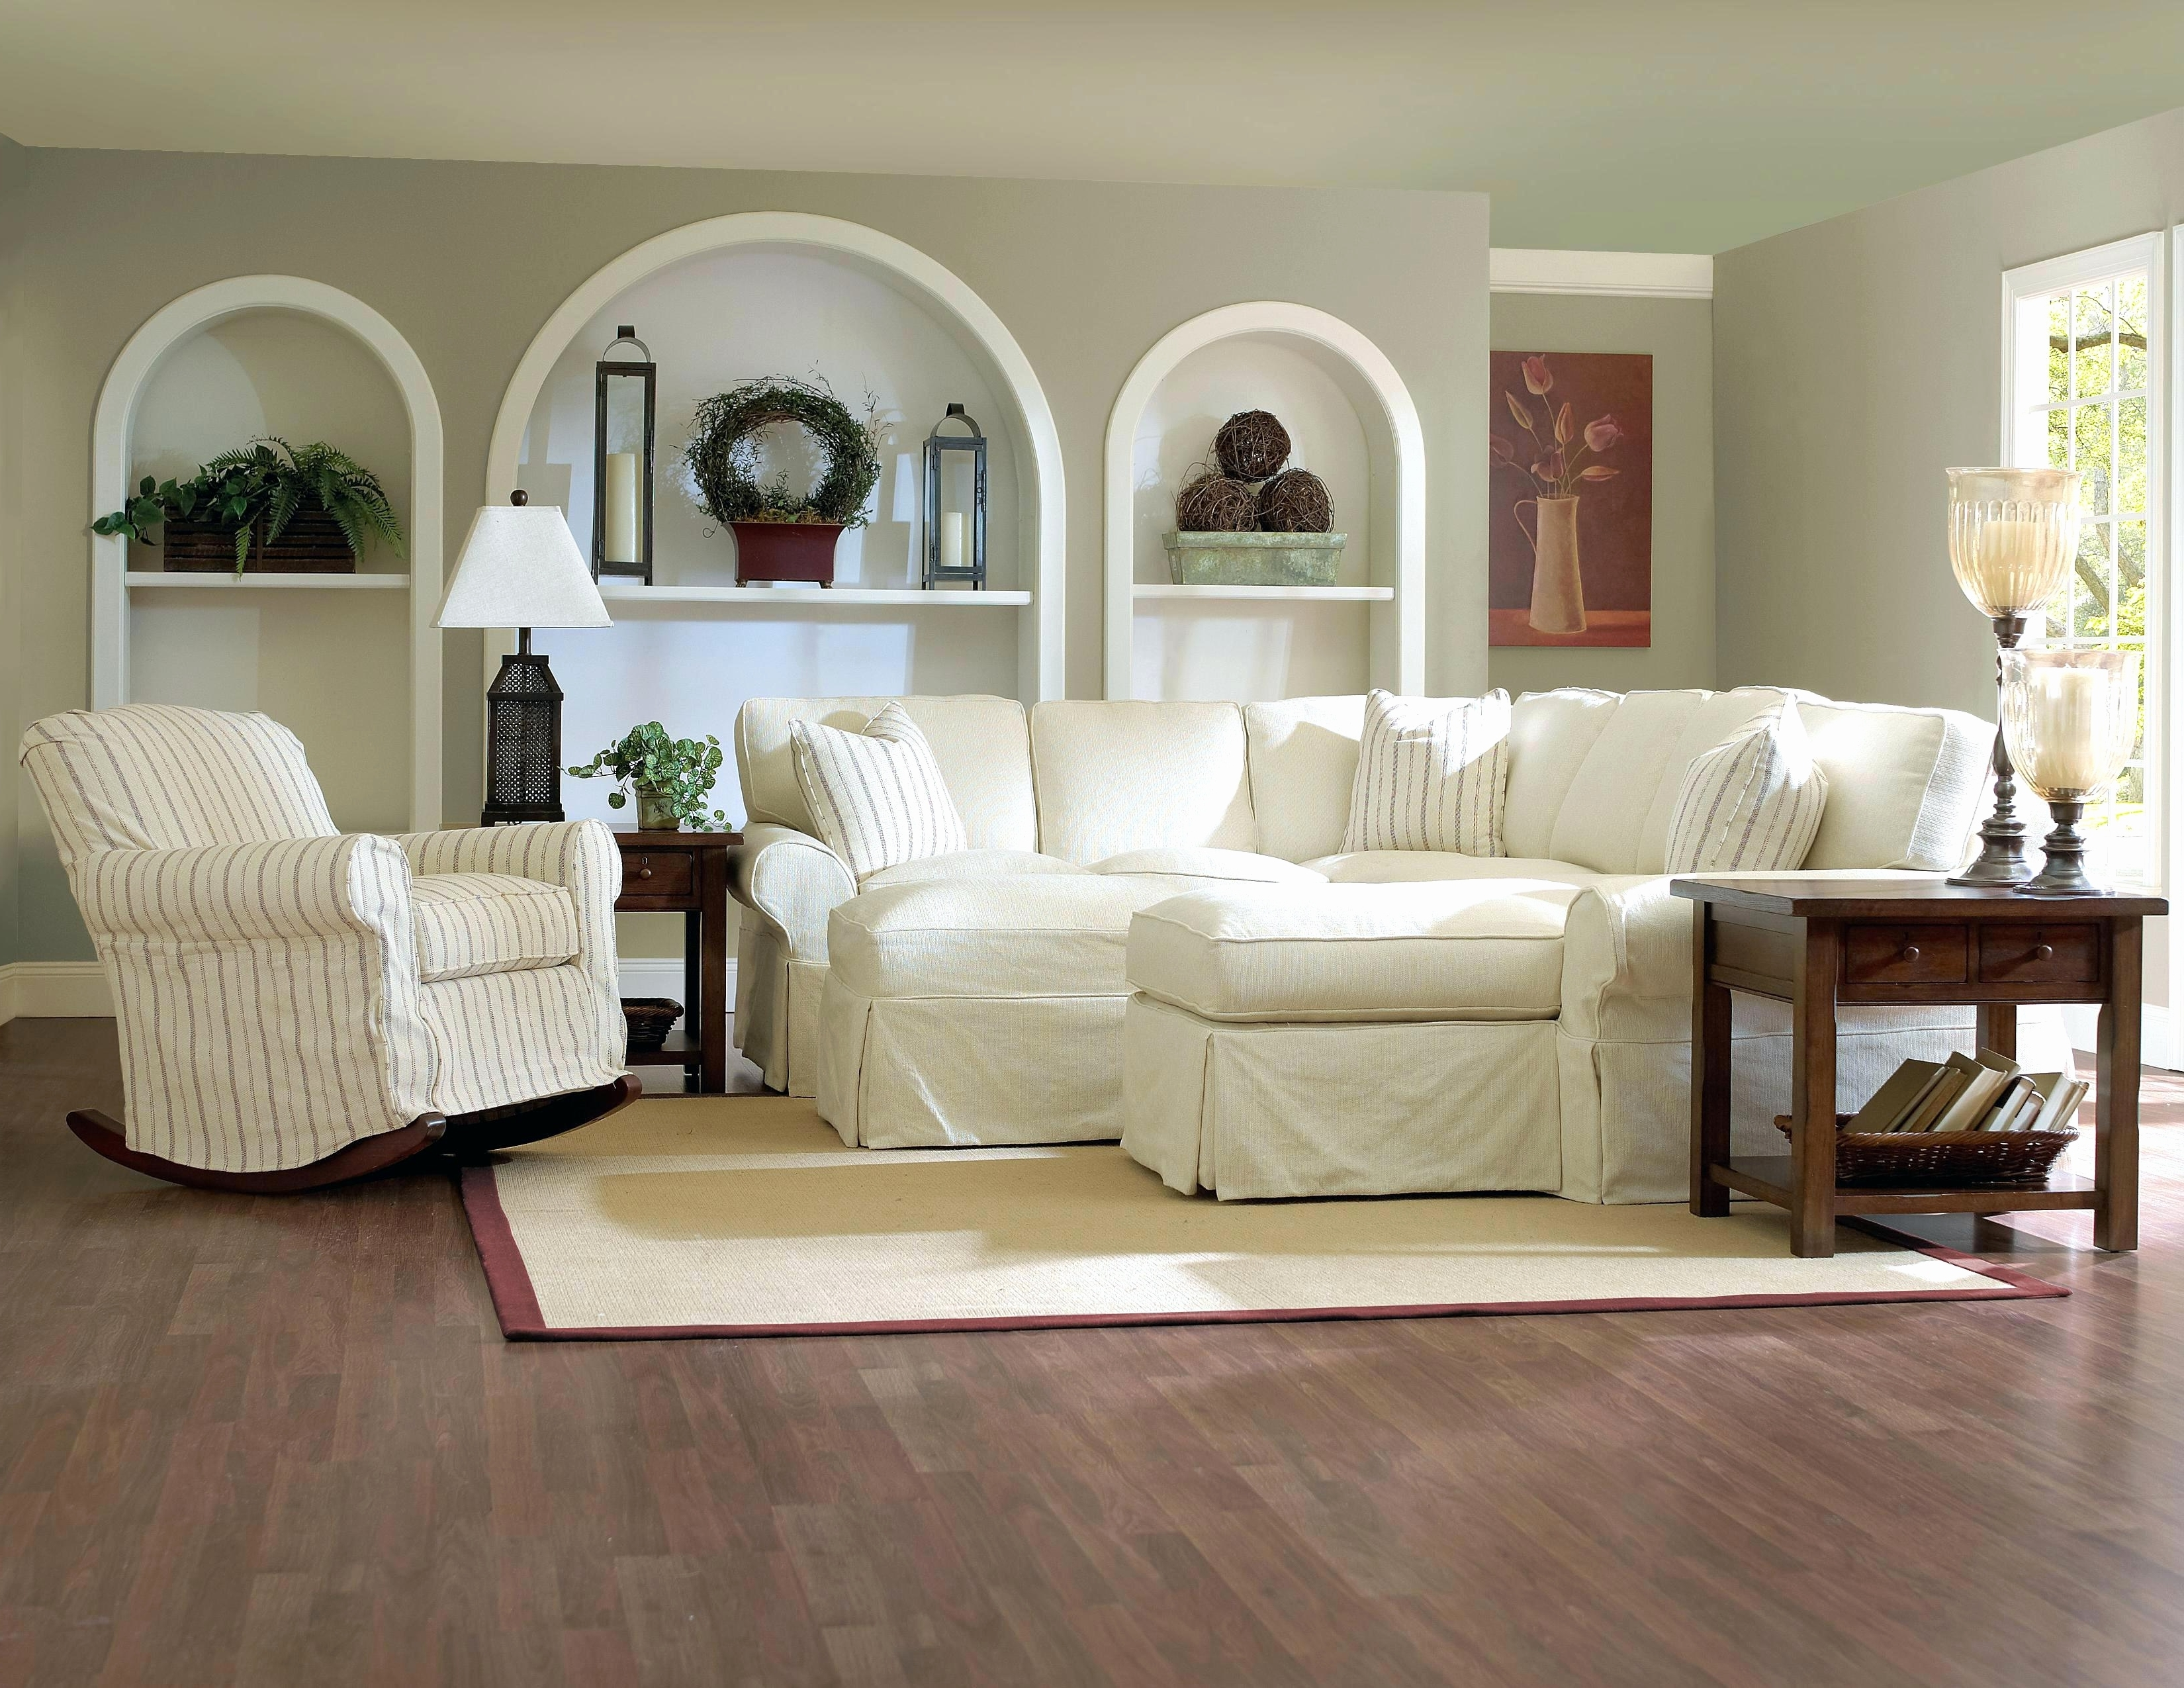 Soothing 2018 Latest Pottery Barn Sectional Sofas Pottery Barn Sofas Made Usa Pottery Barn Sofas Sectionals Pottery Barn Sectional Sofas Within Most Potterybarn Sofa 2018 Couches houzz-02 Pottery Barn Sofas